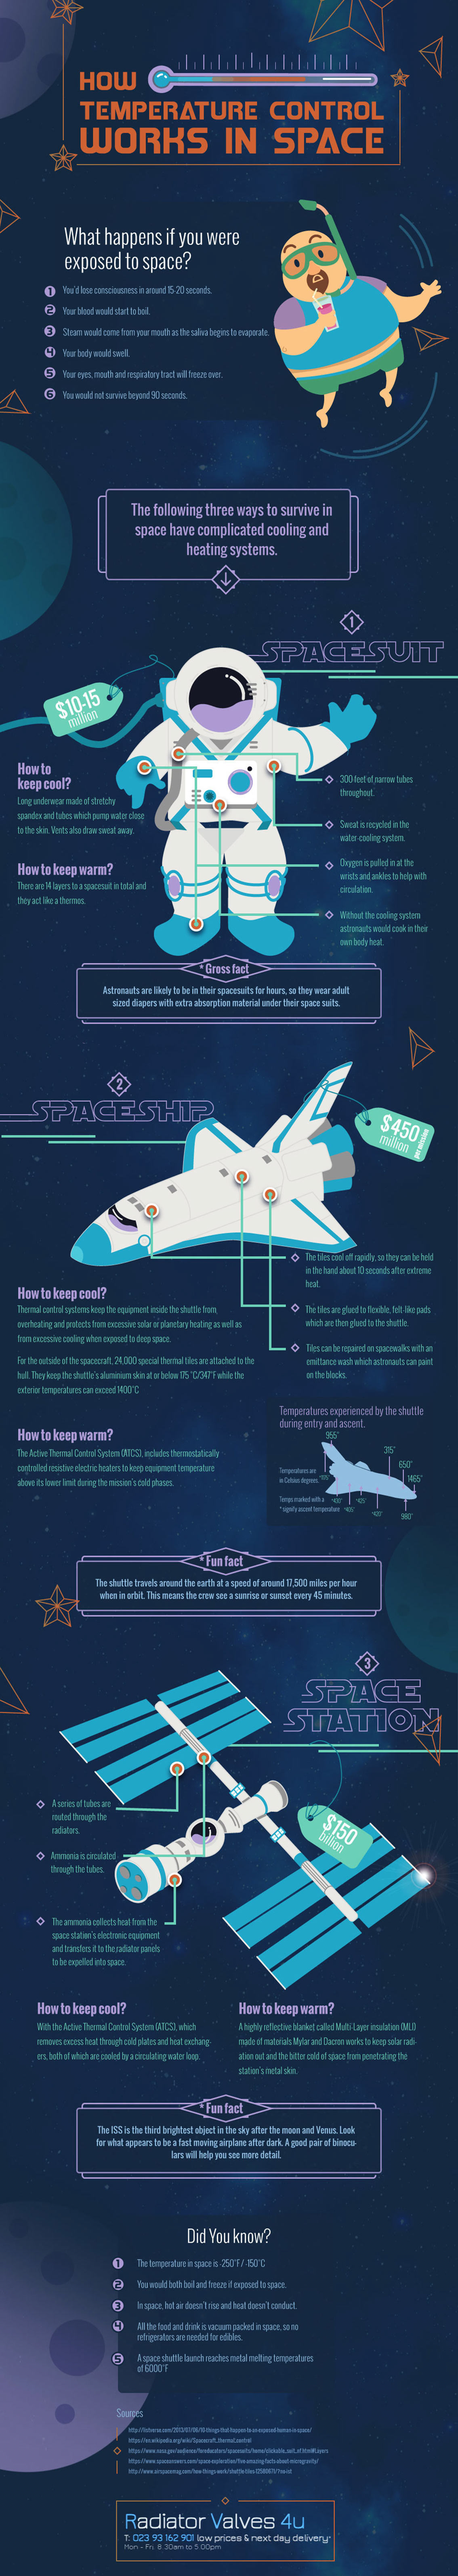 How Do Astronauts Control Temperature in Space Infographic